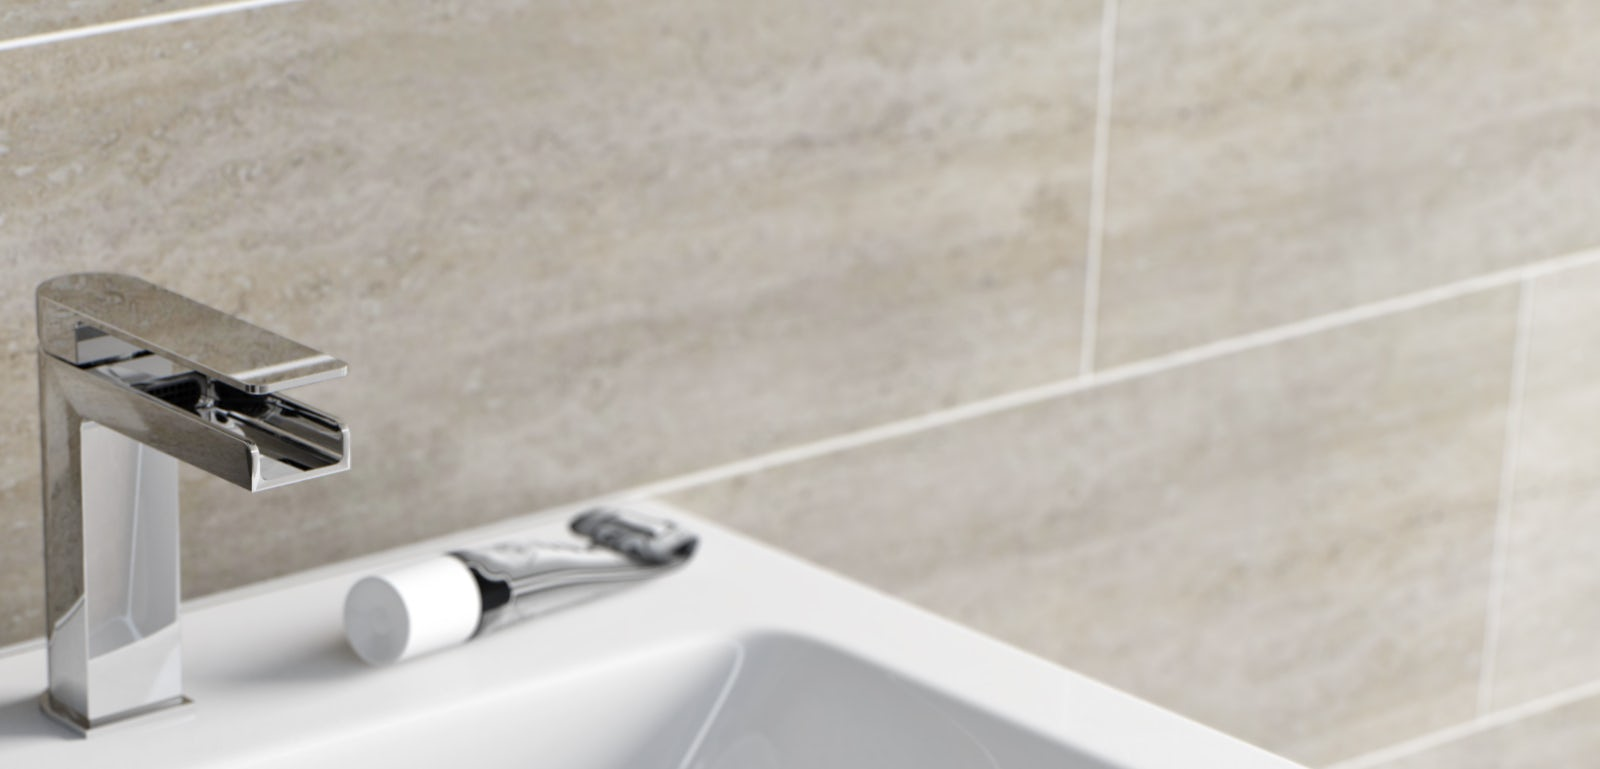 Common tap problems and solutions